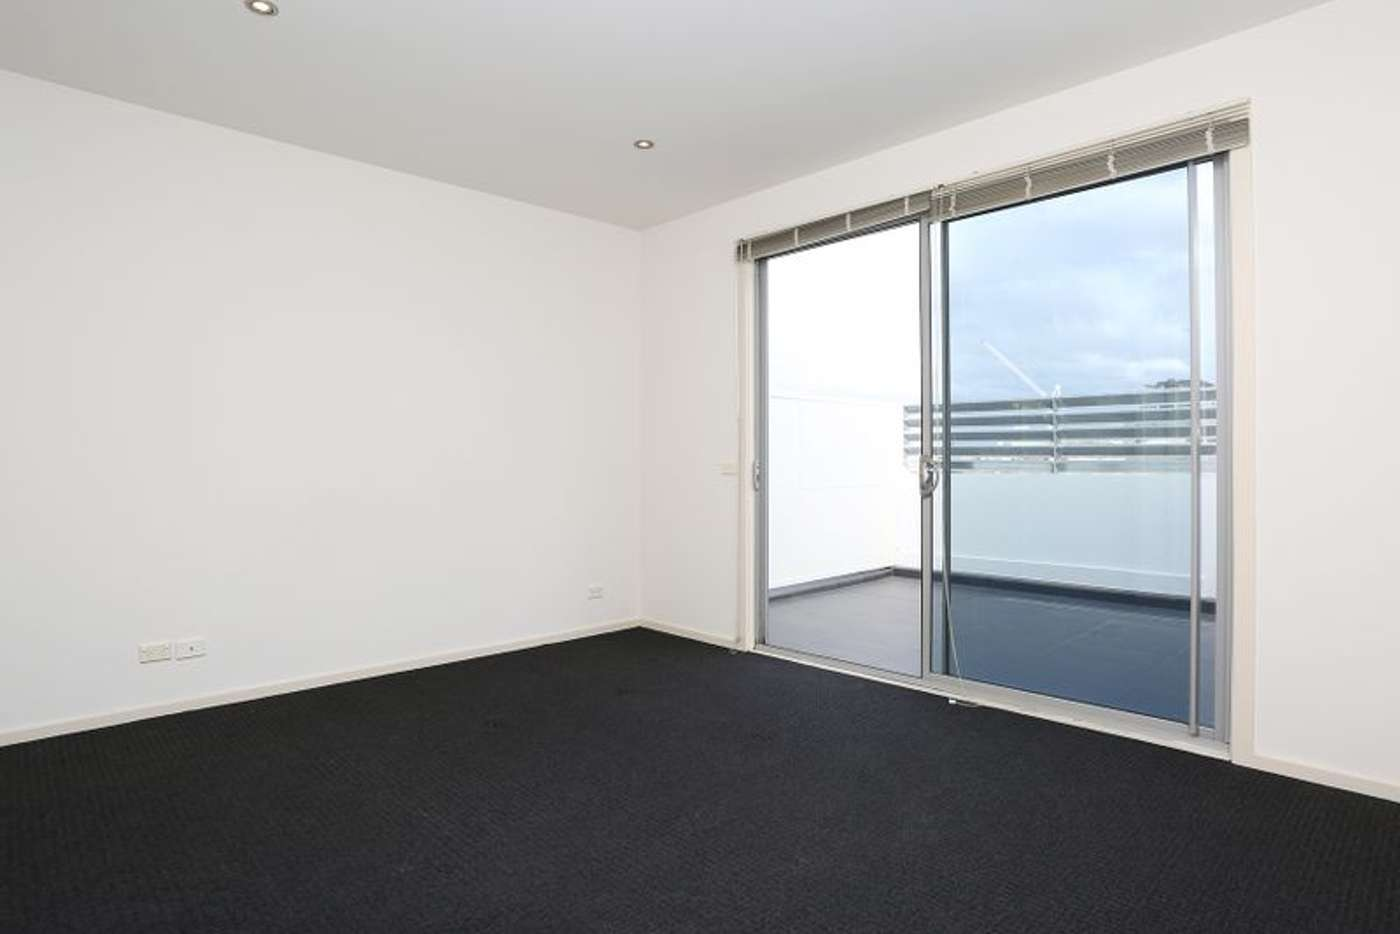 Sixth view of Homely apartment listing, 4/32-36 Smith Street, Collingwood VIC 3066